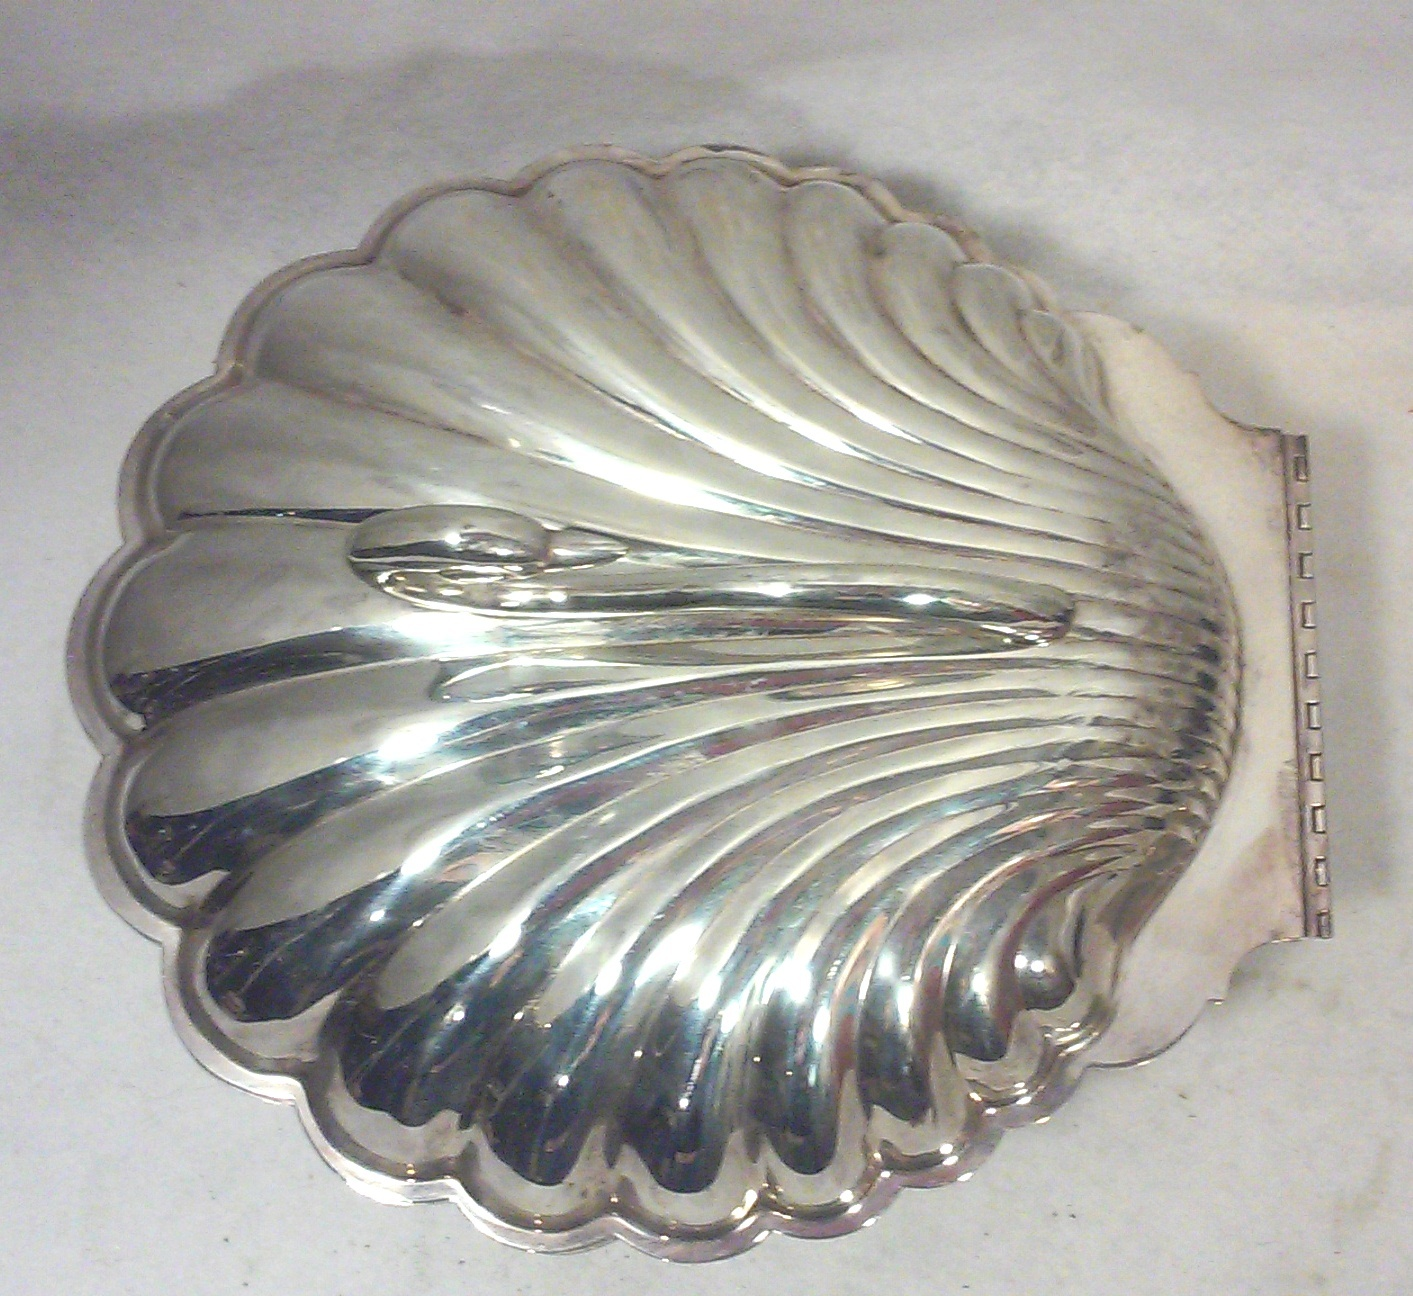 Vintage Hollywood Regency Silverplate Clam Shell Serving Dish with Swan Handle